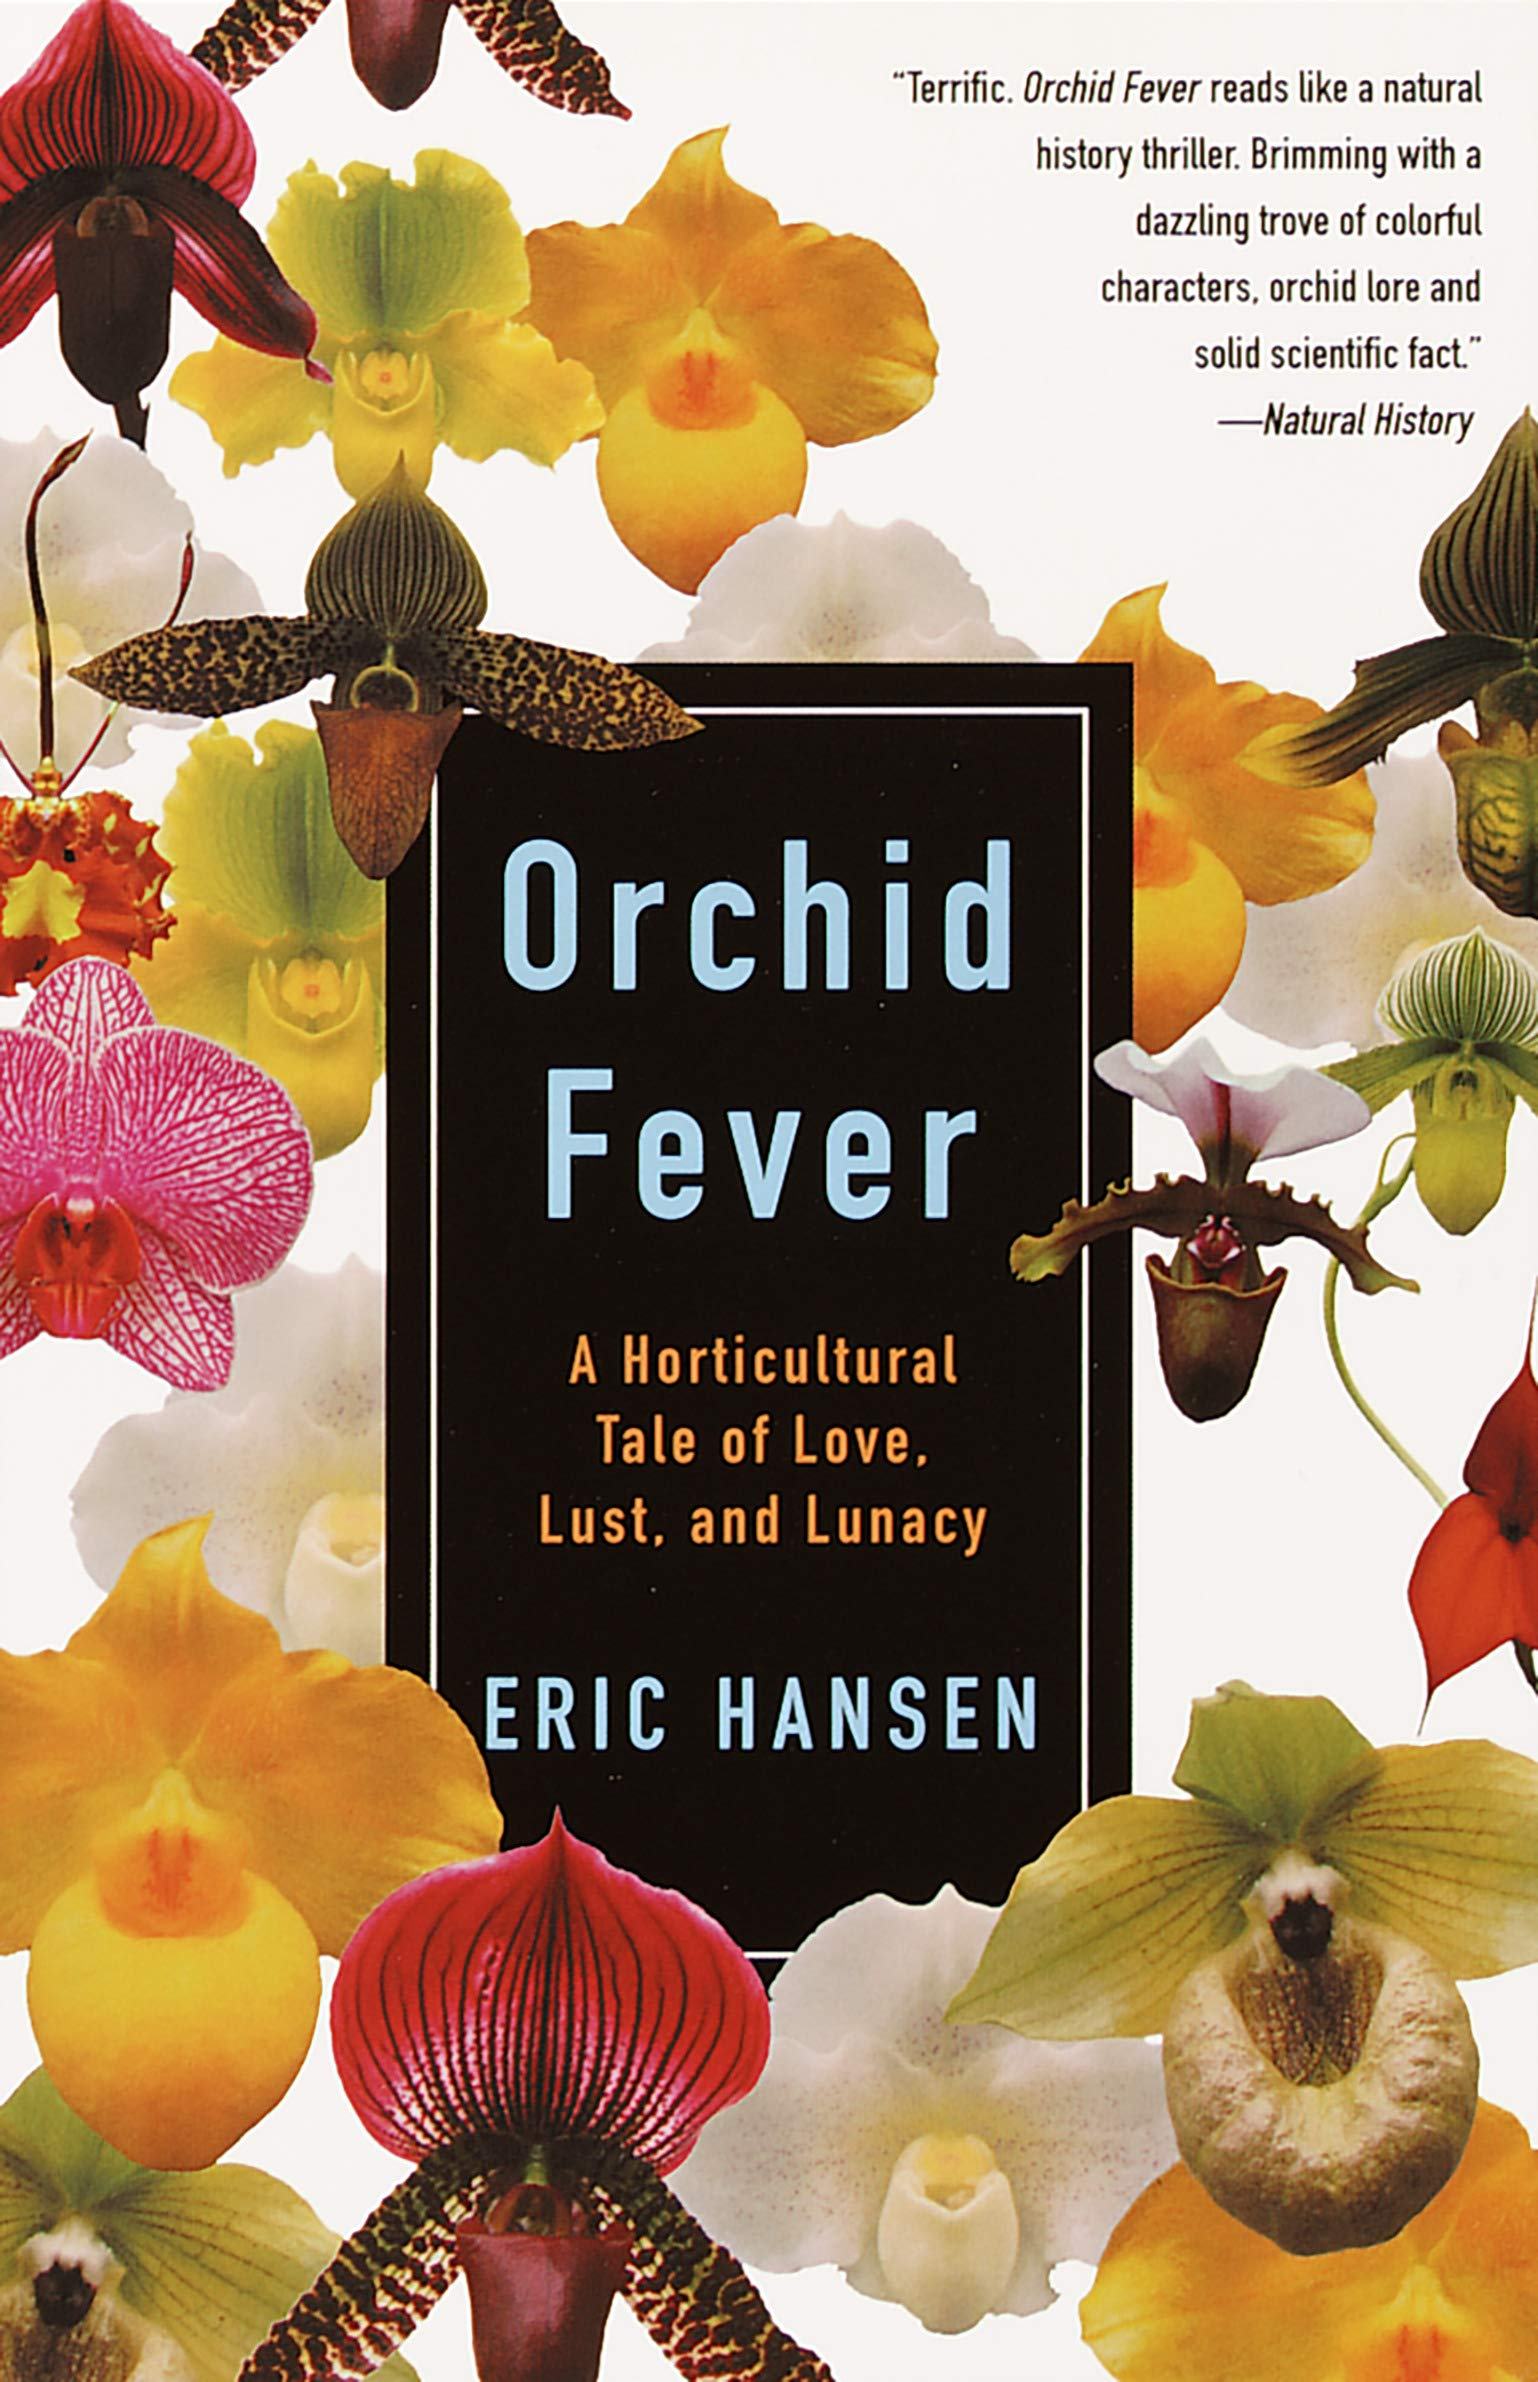 Orchid Fever: A Horticultural Tale of Love, Lust, and Lunacy: Eric